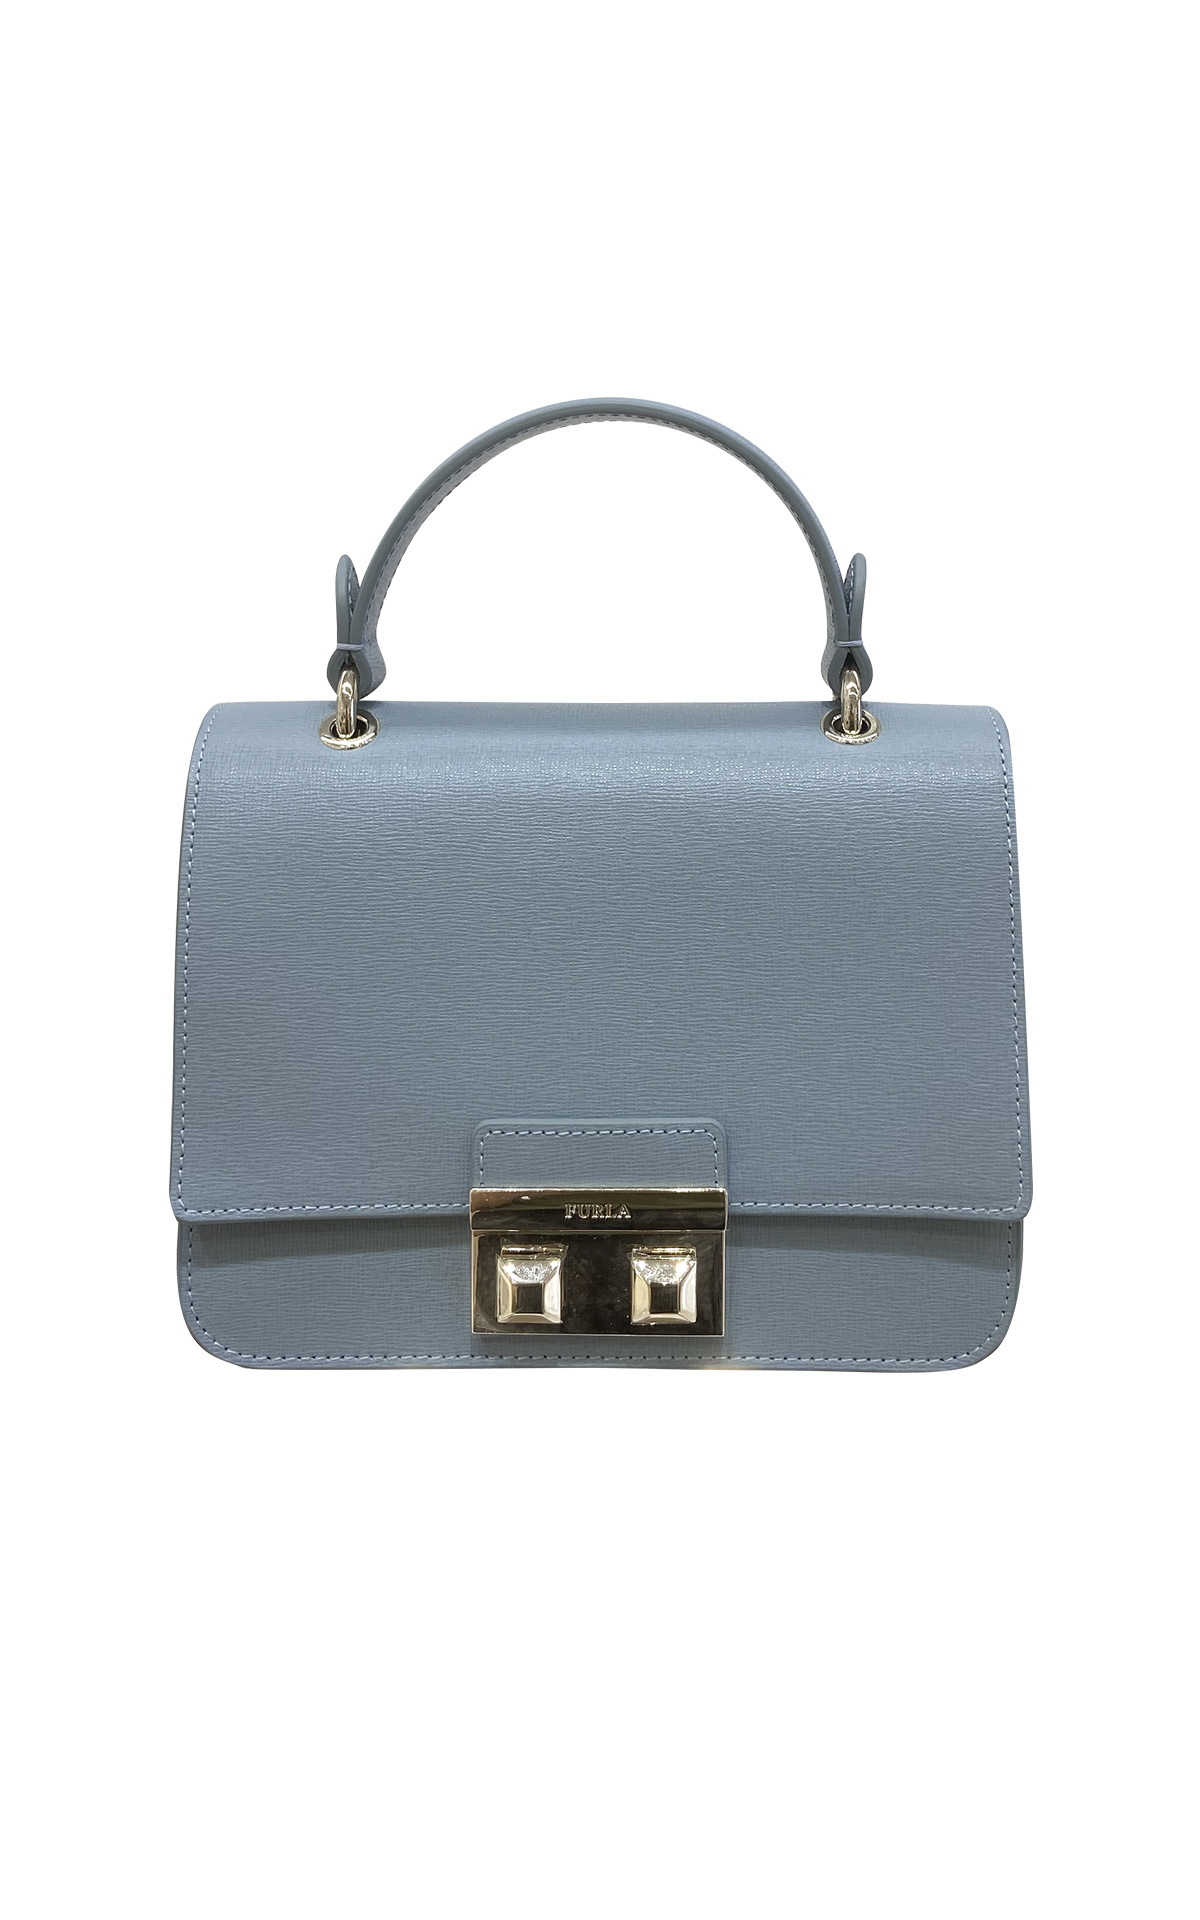 Blue bag from Furla